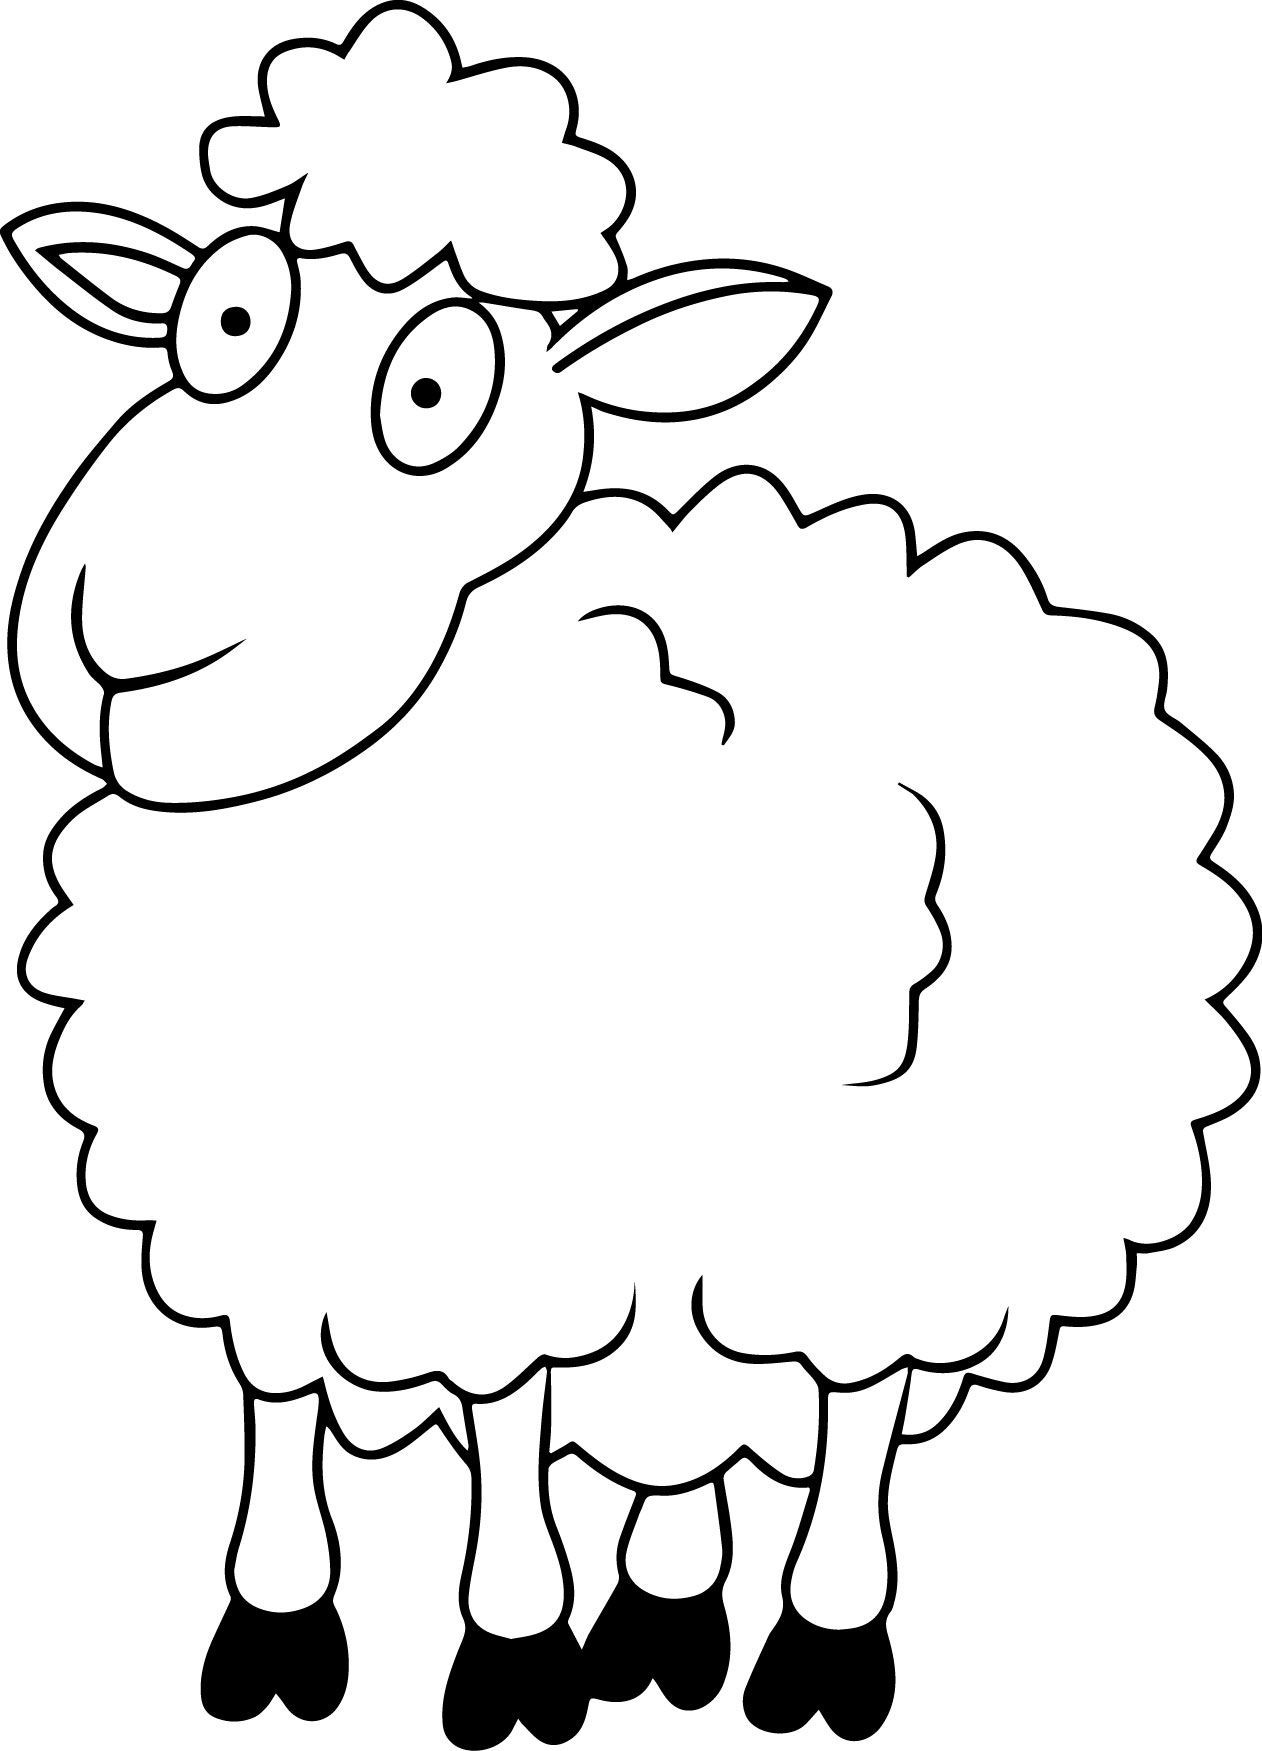 Sheep Coloring Page 06 Jpg Animal Coloring Pages Sheep Outline Coloring Pages